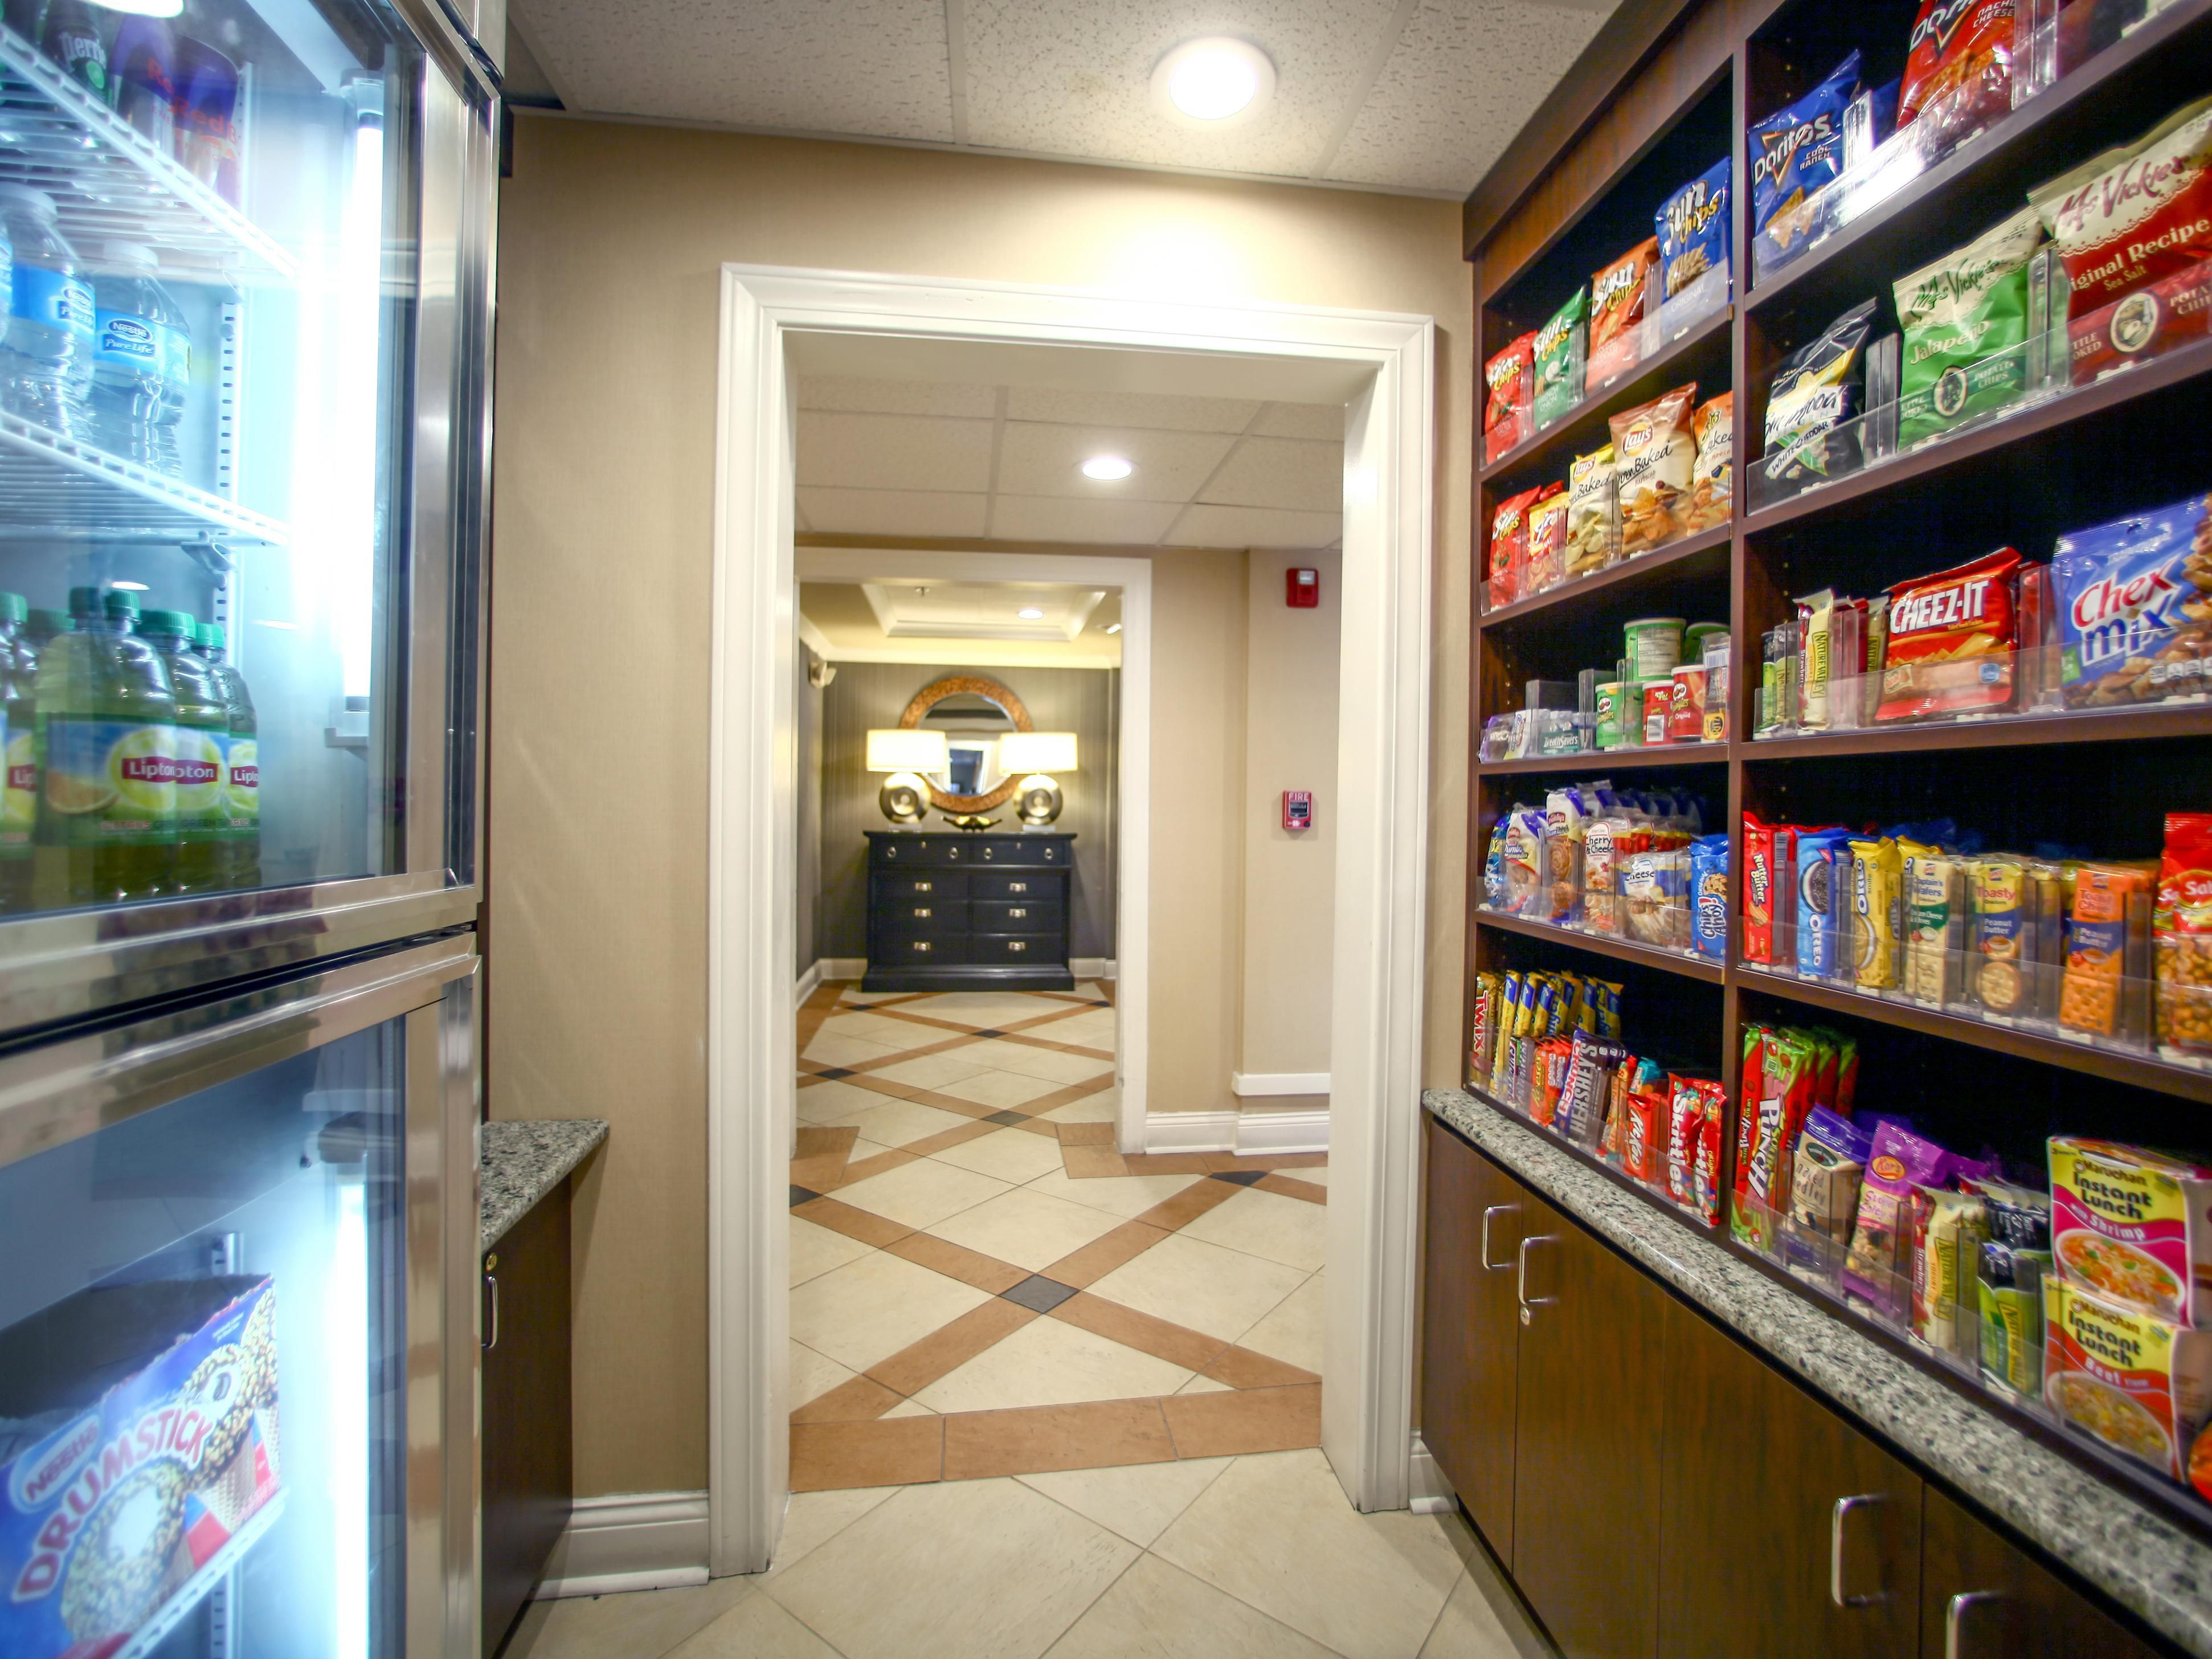 Snacks and Pharmacy Items